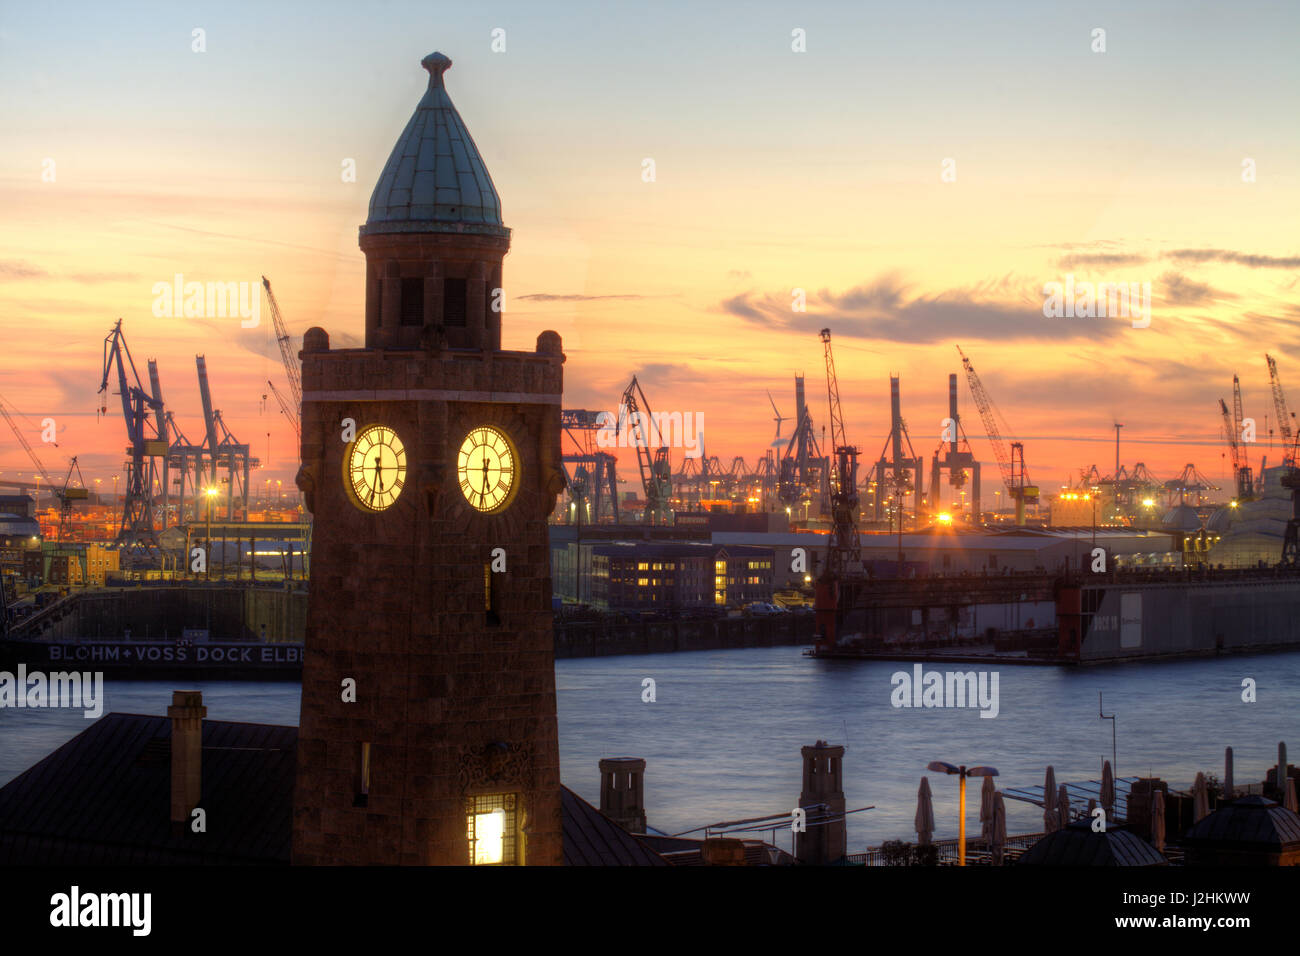 Stock photo hamburg germany riverside new - Sant Pauli Landing Bridges At Dusk Hamburg Germany Europe I Hamburg